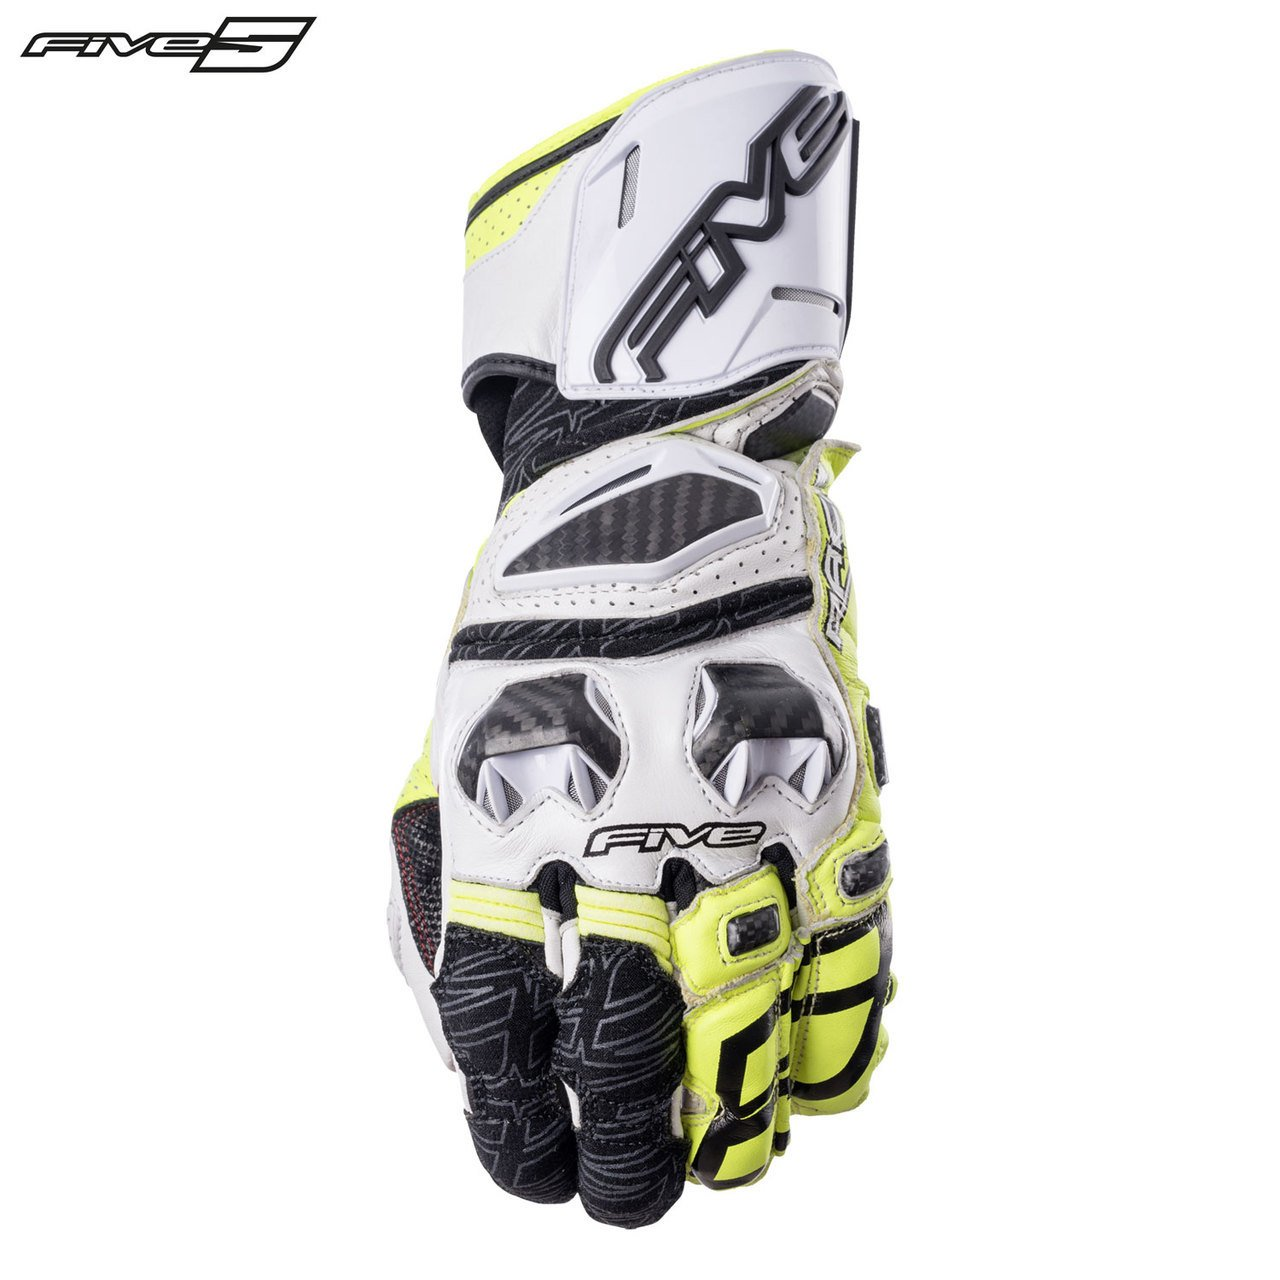 Five RFX 2017 Adult Street Bike Motorcycle Gloves - Fluo Yellow/X-Large